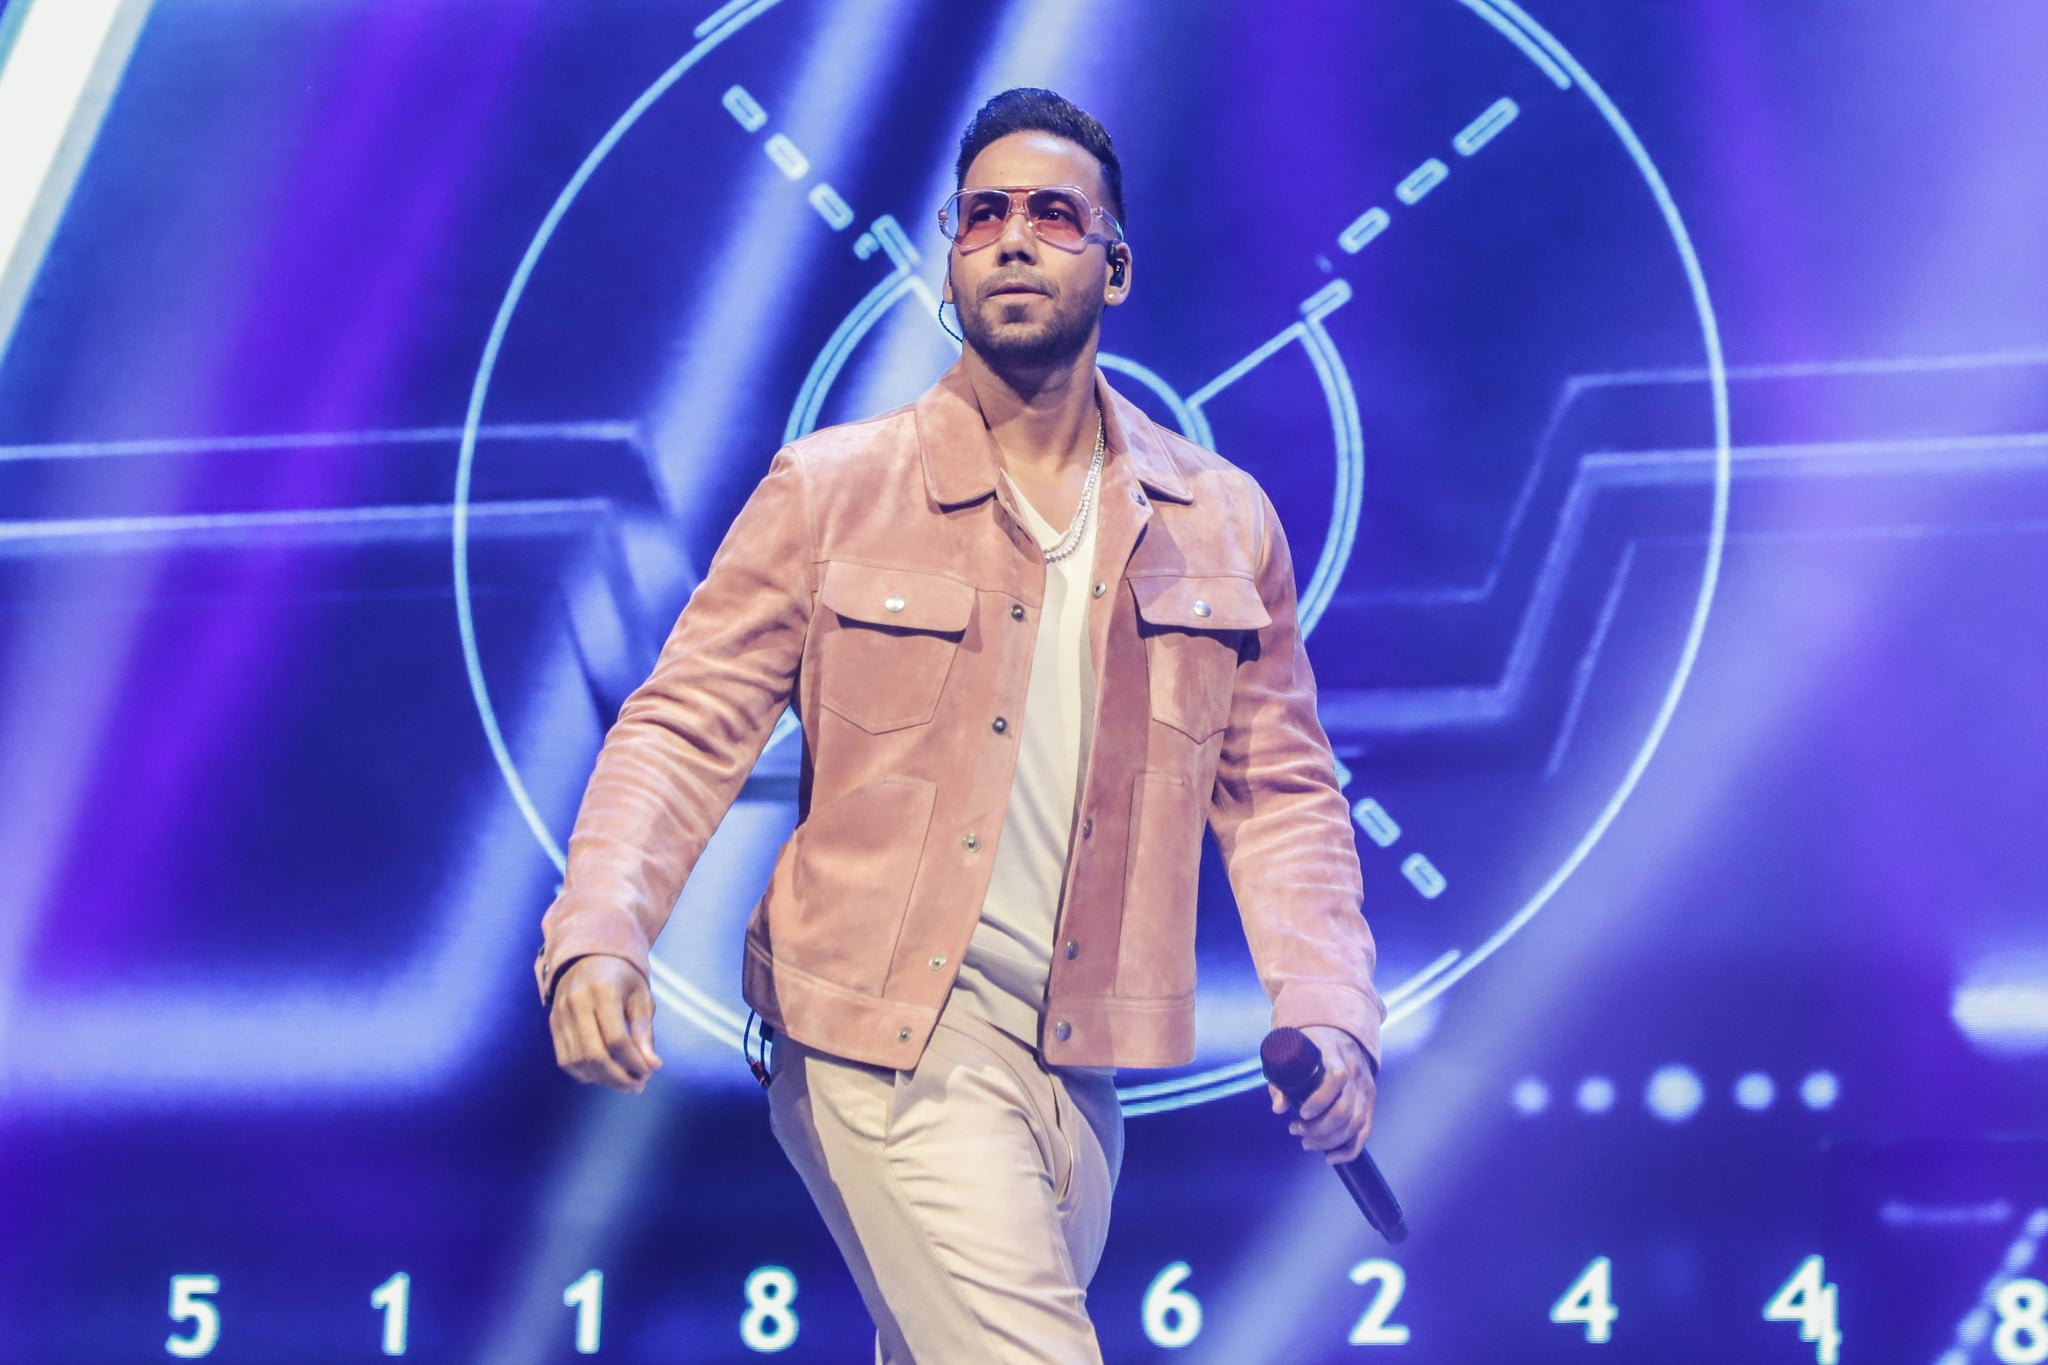 MIAMI, FLORIDA - MARCH 10:  Singer Romeo Santos performs on stage during 'Inmortal' Aventura Tour at American Airlines Arena on March 10, 2020 in Miami, Florida. (Photo by John Parra/Getty Images)